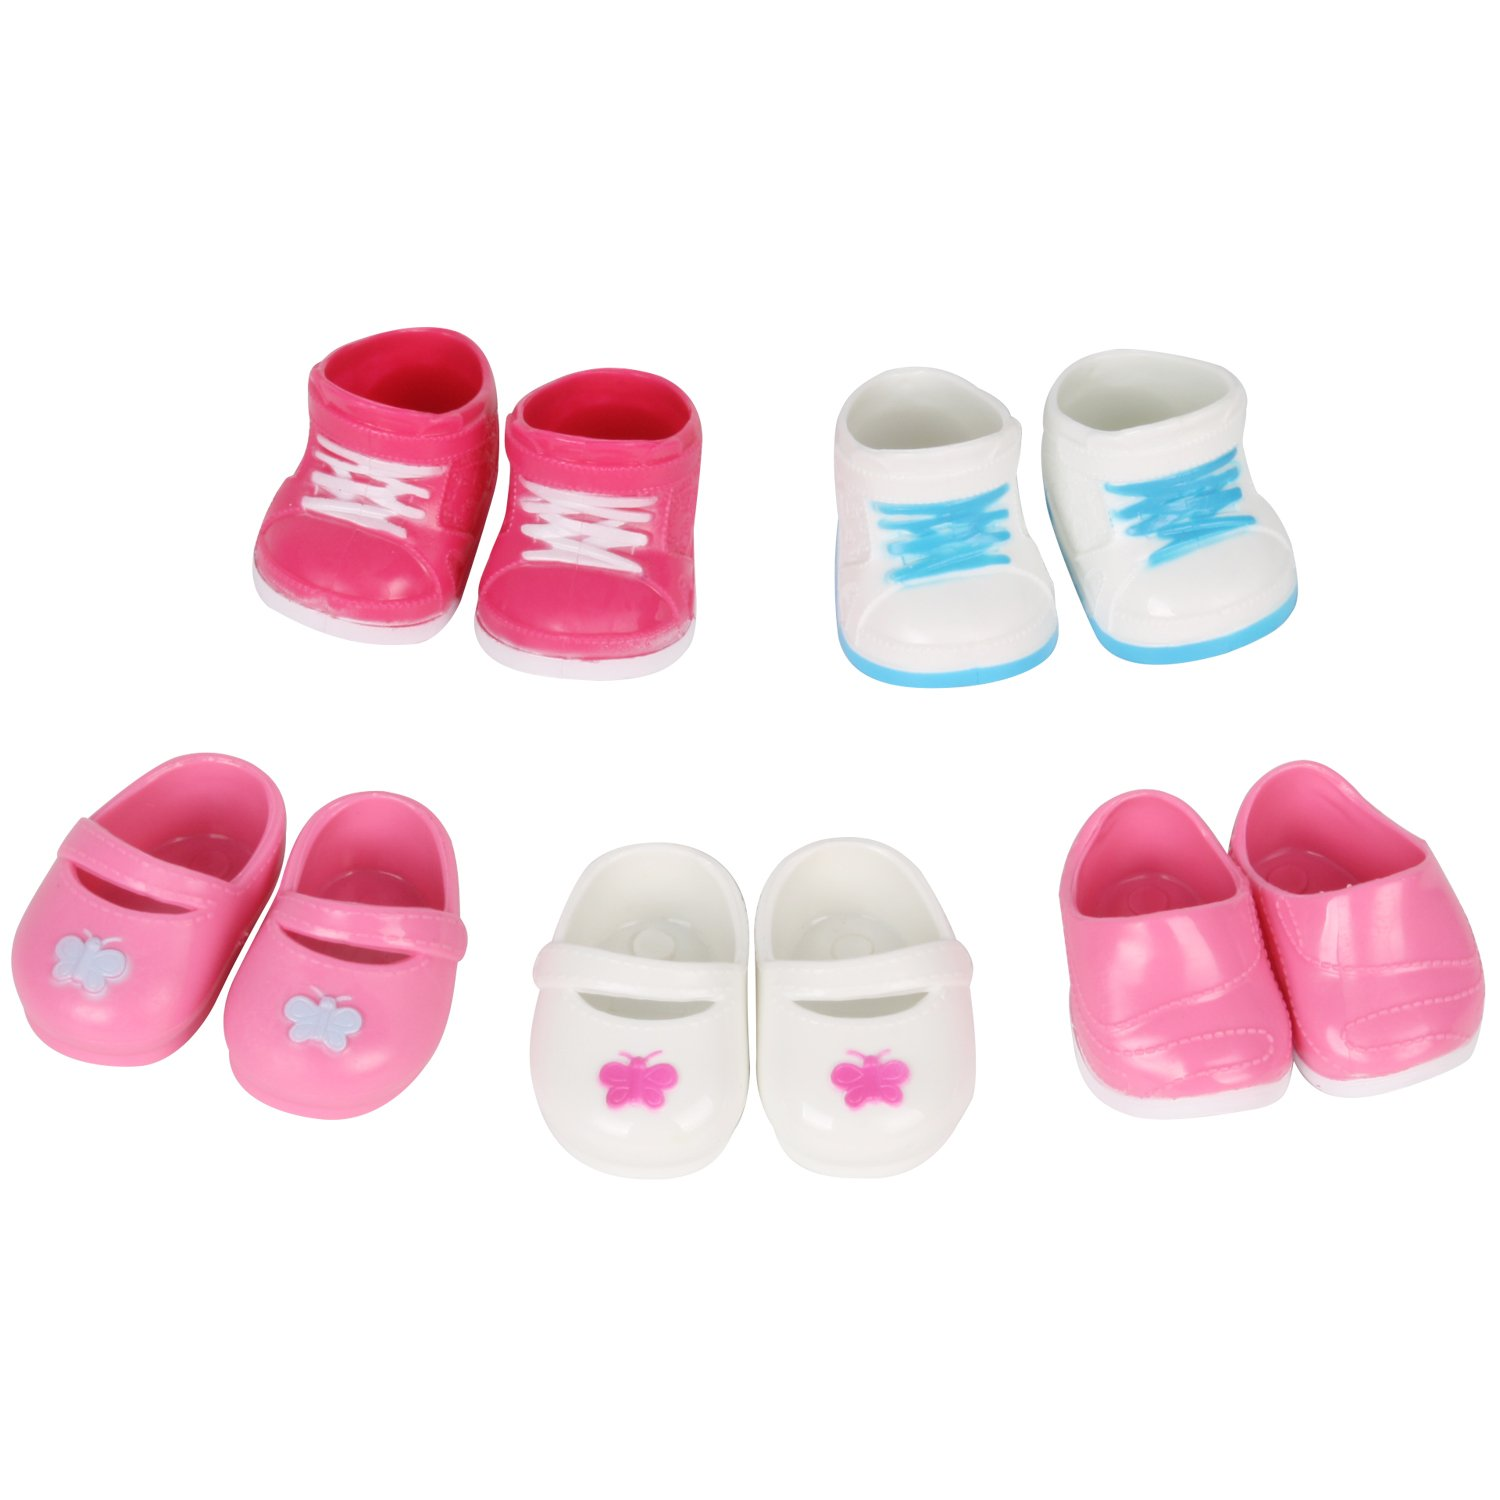 Huang Cheng Toys 5 Pairs of Shoes for 15-16 Inch Doll Boots Sneakers